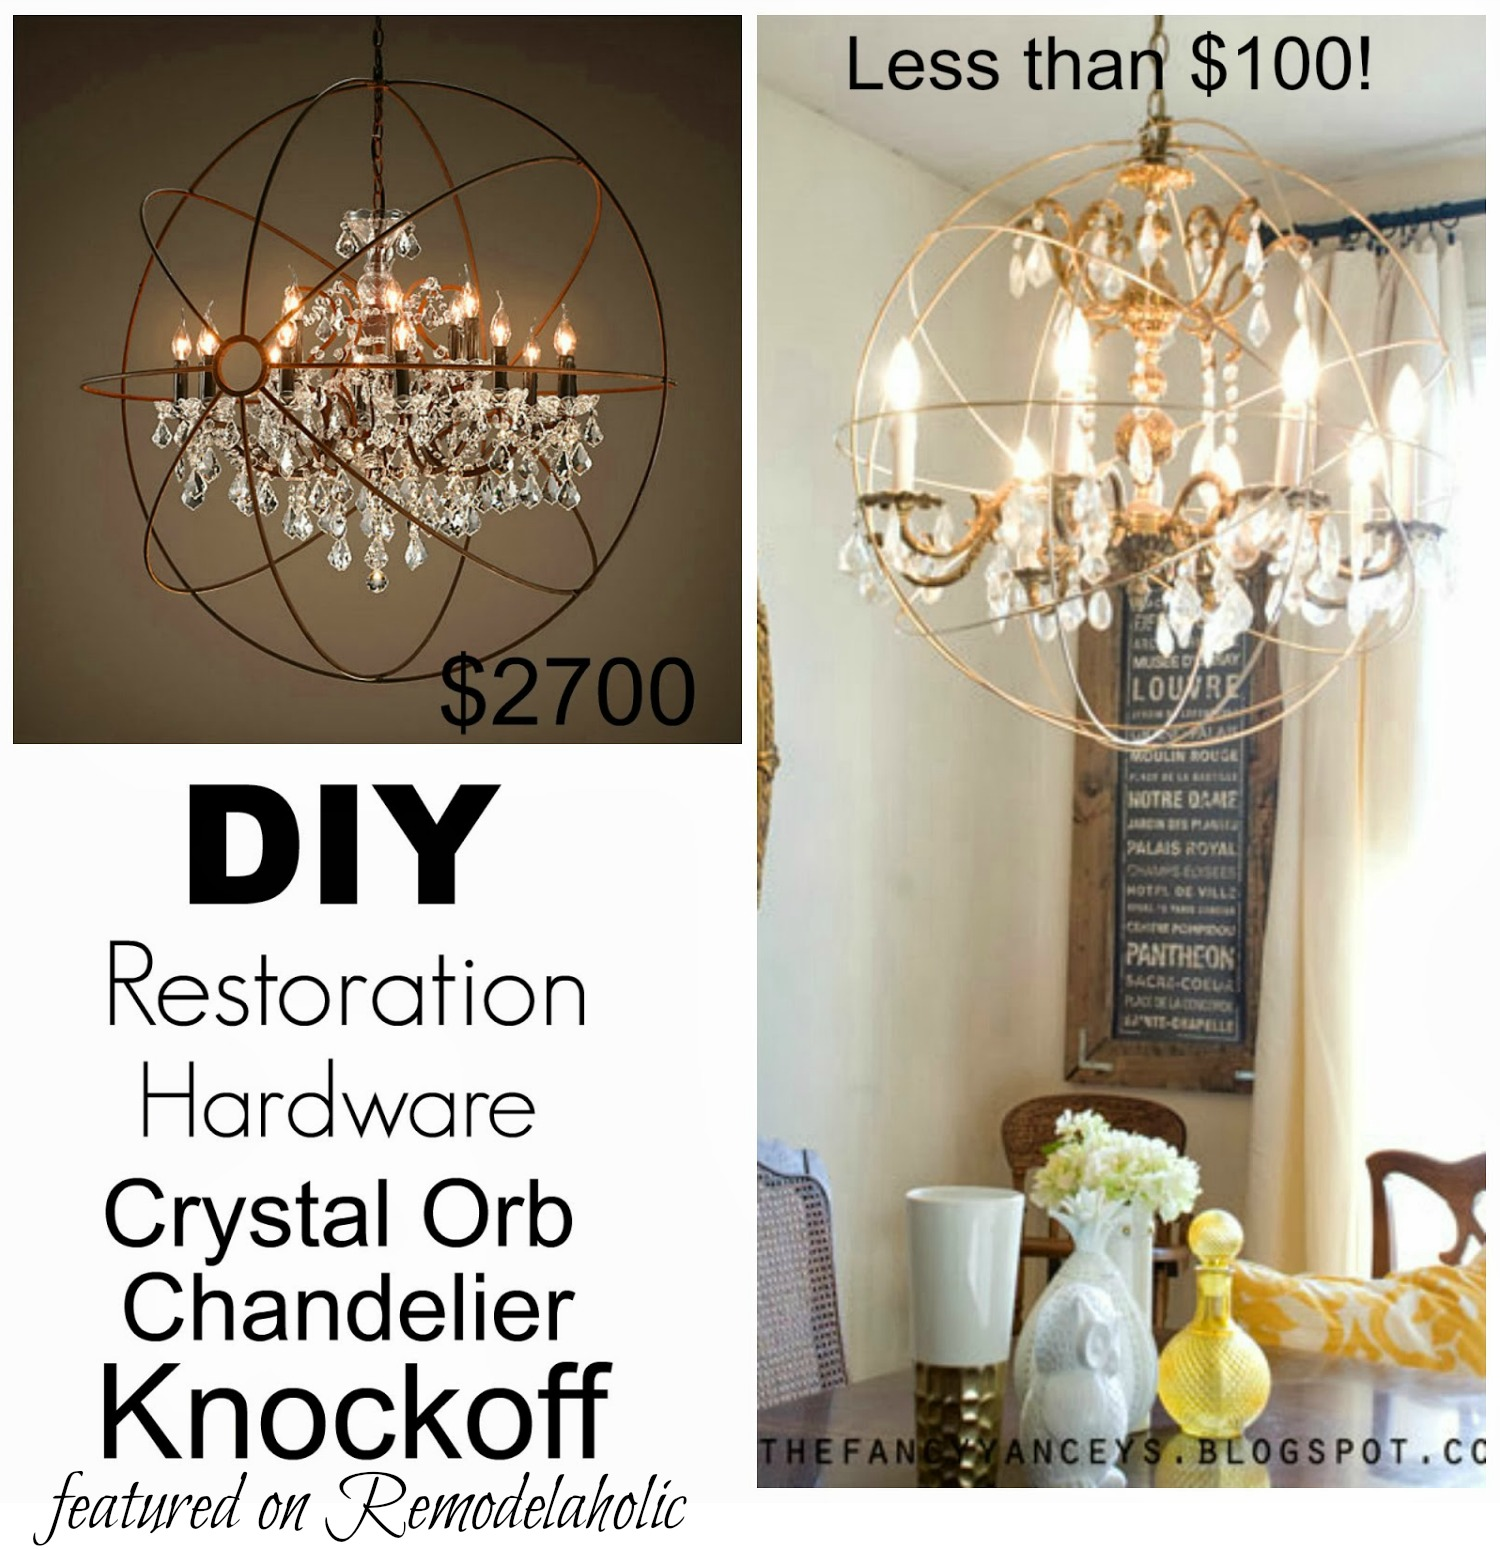 track off table knock chandelier lighting lantern hardware most rejuvenation restoration ace lamps